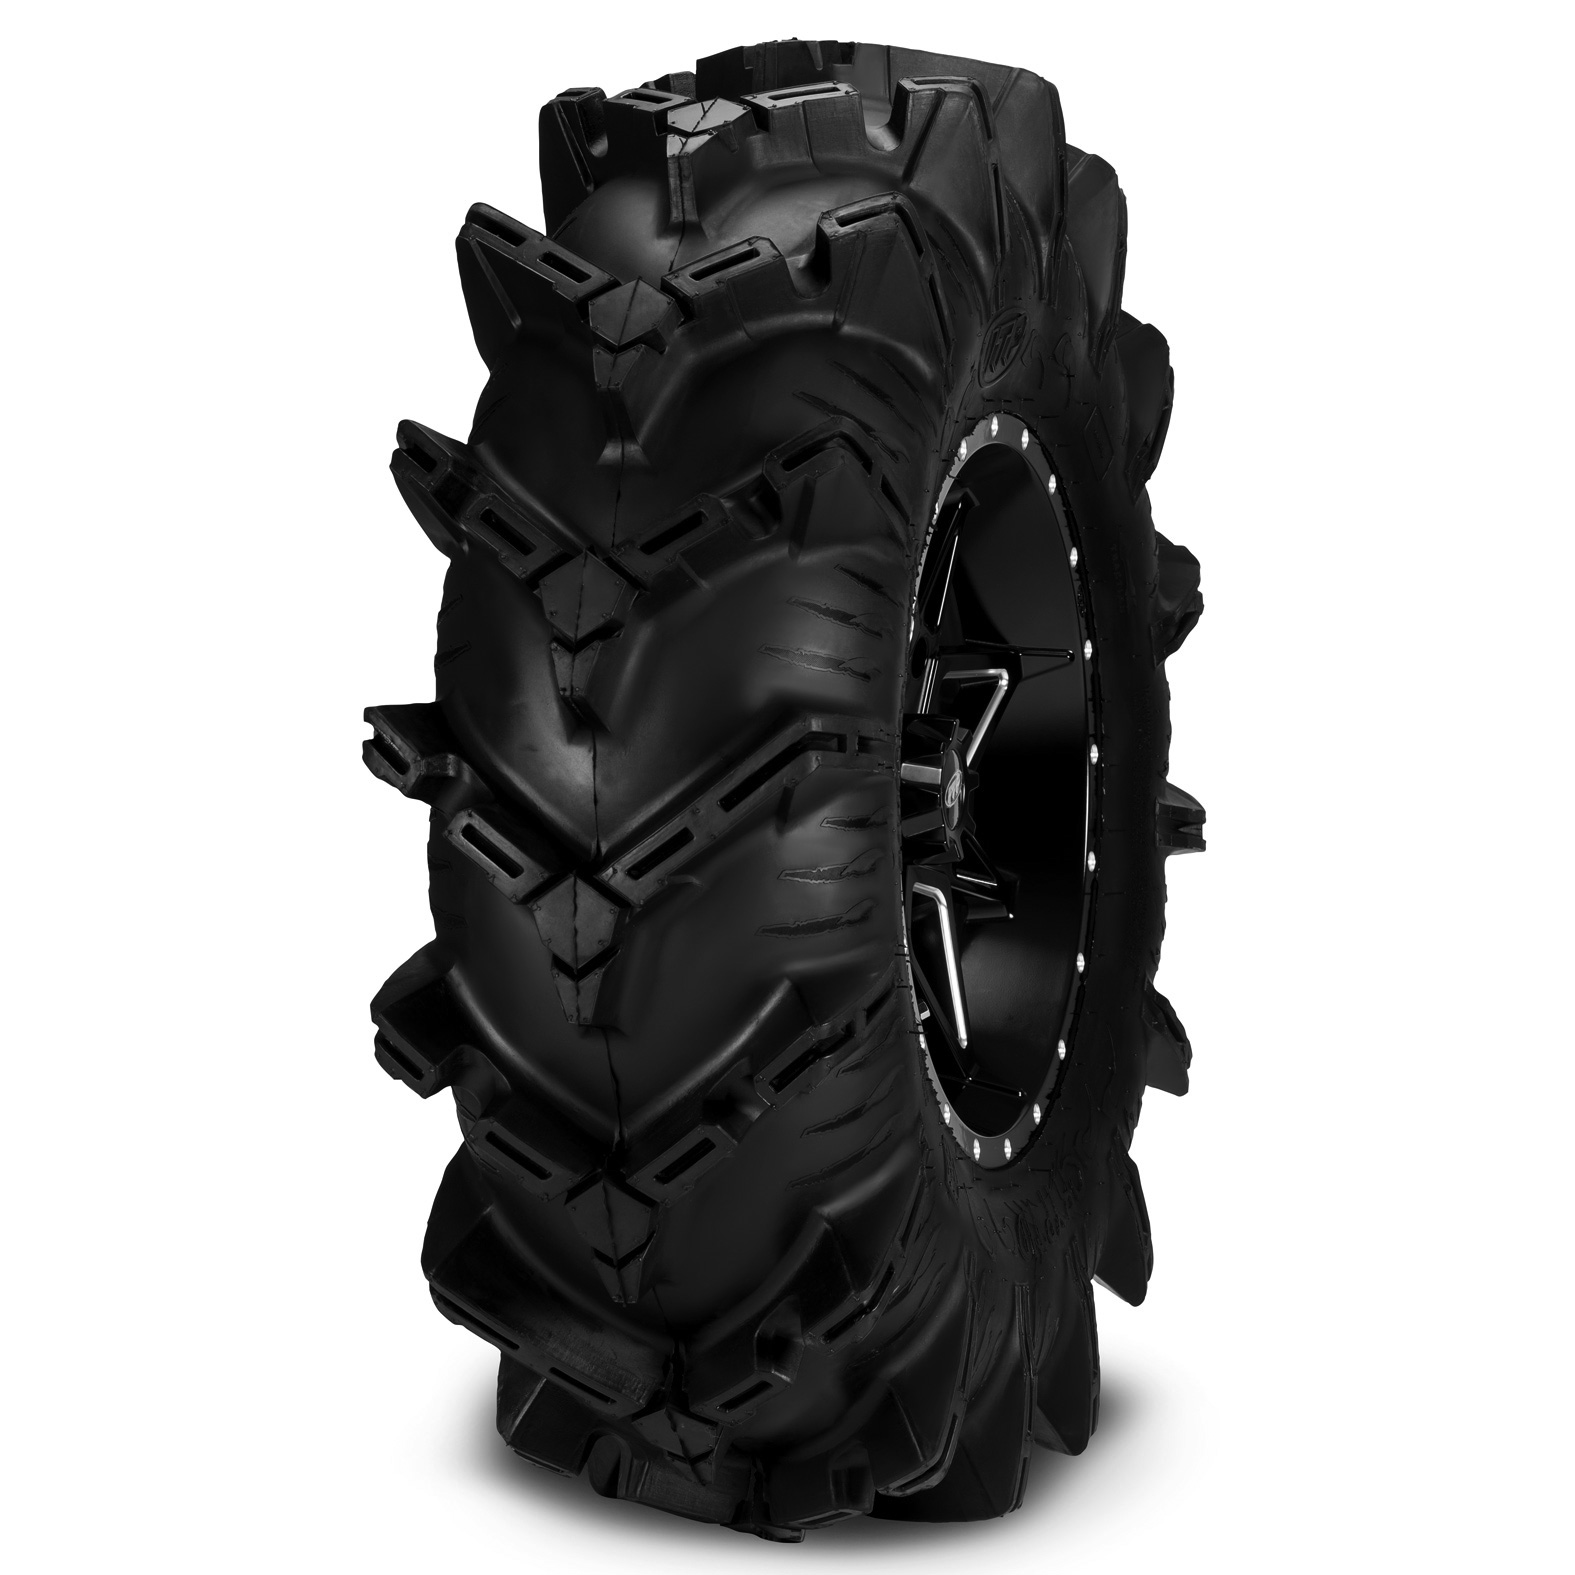 ITP Cryptid ATV Tire - Angle